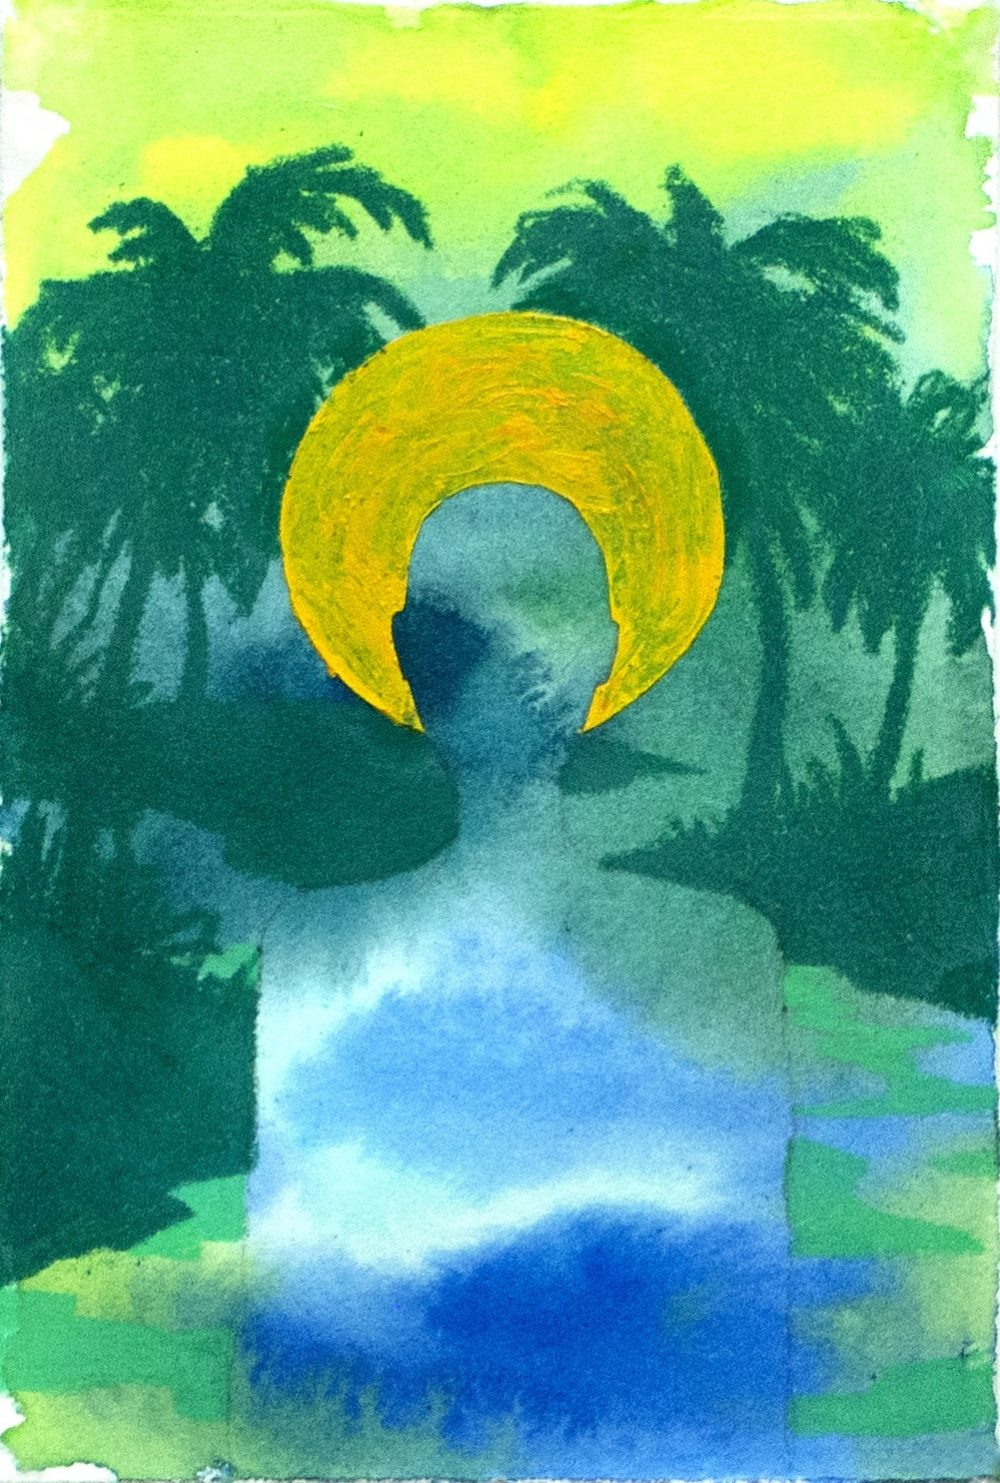 Silhouette of a person's torso and head with a golden halo around the head and palm trees in the background.